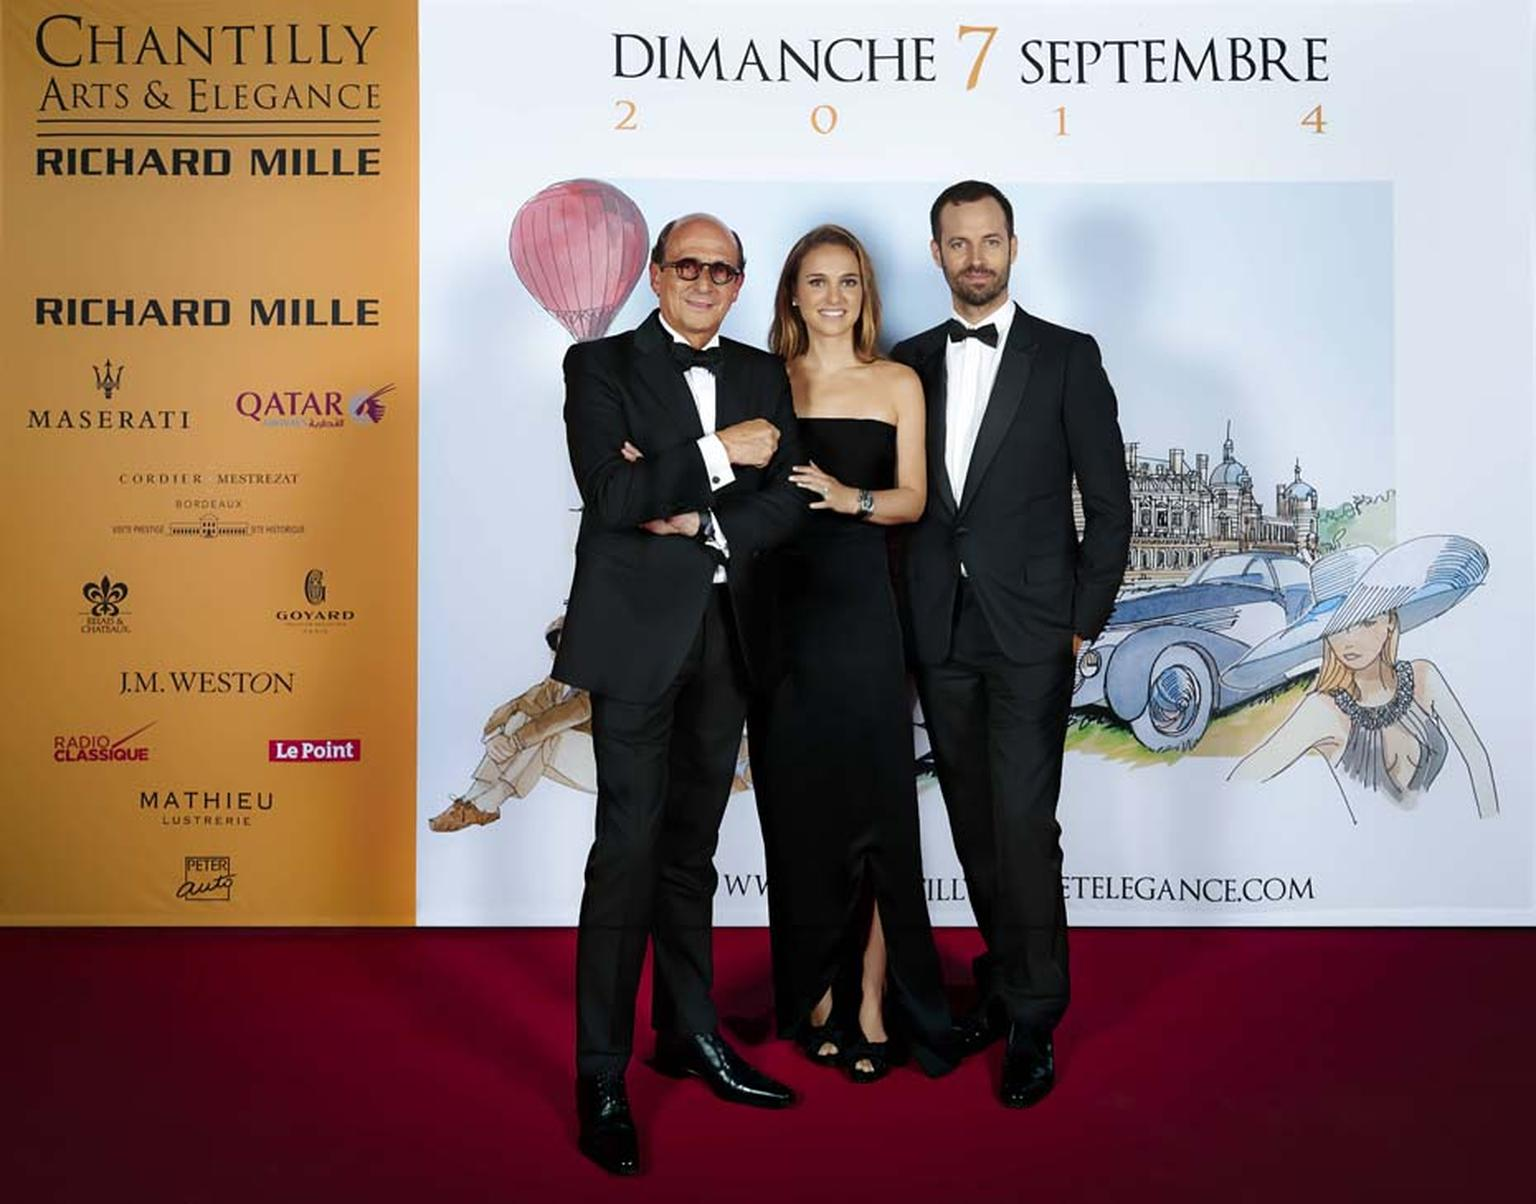 During the Concours d'Elégance dinner, Richard Mille shared a photo opportunity with Natalie Portman, a friend of the brand who helped design the Richard Mille RM 19-01 women's watch, and her husband Benjamin Millepied.